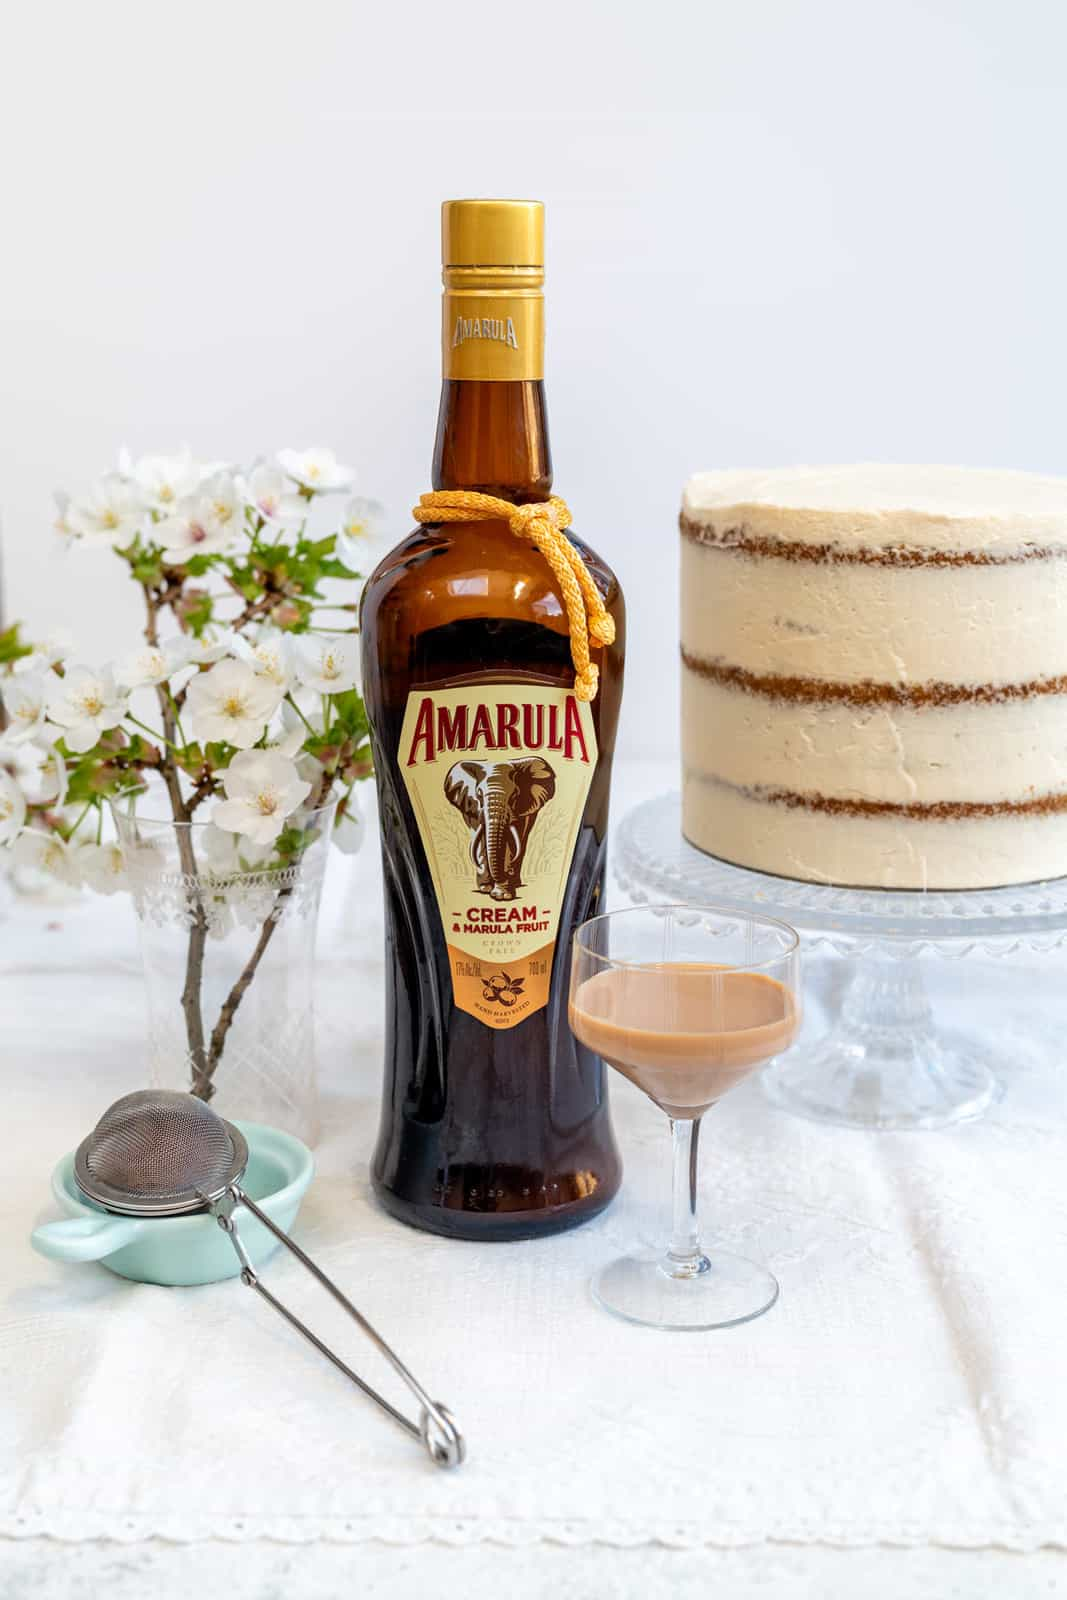 Amarula Cream Liquor with small glass on side